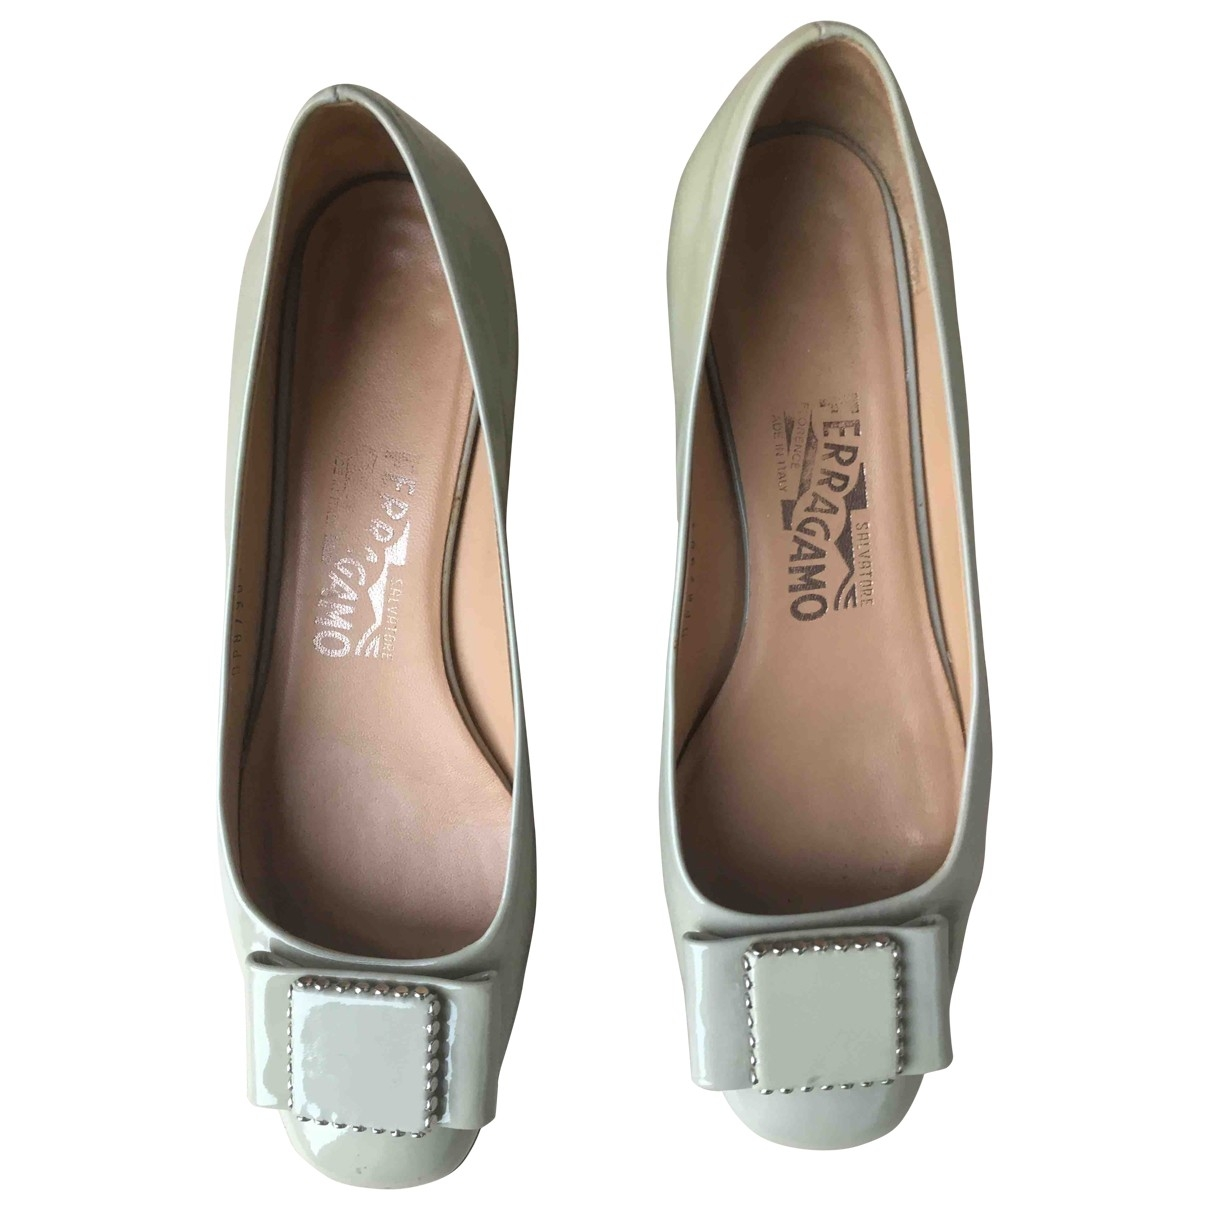 Salvatore Ferragamo \N Turquoise Patent leather Ballet flats for Women 6 US